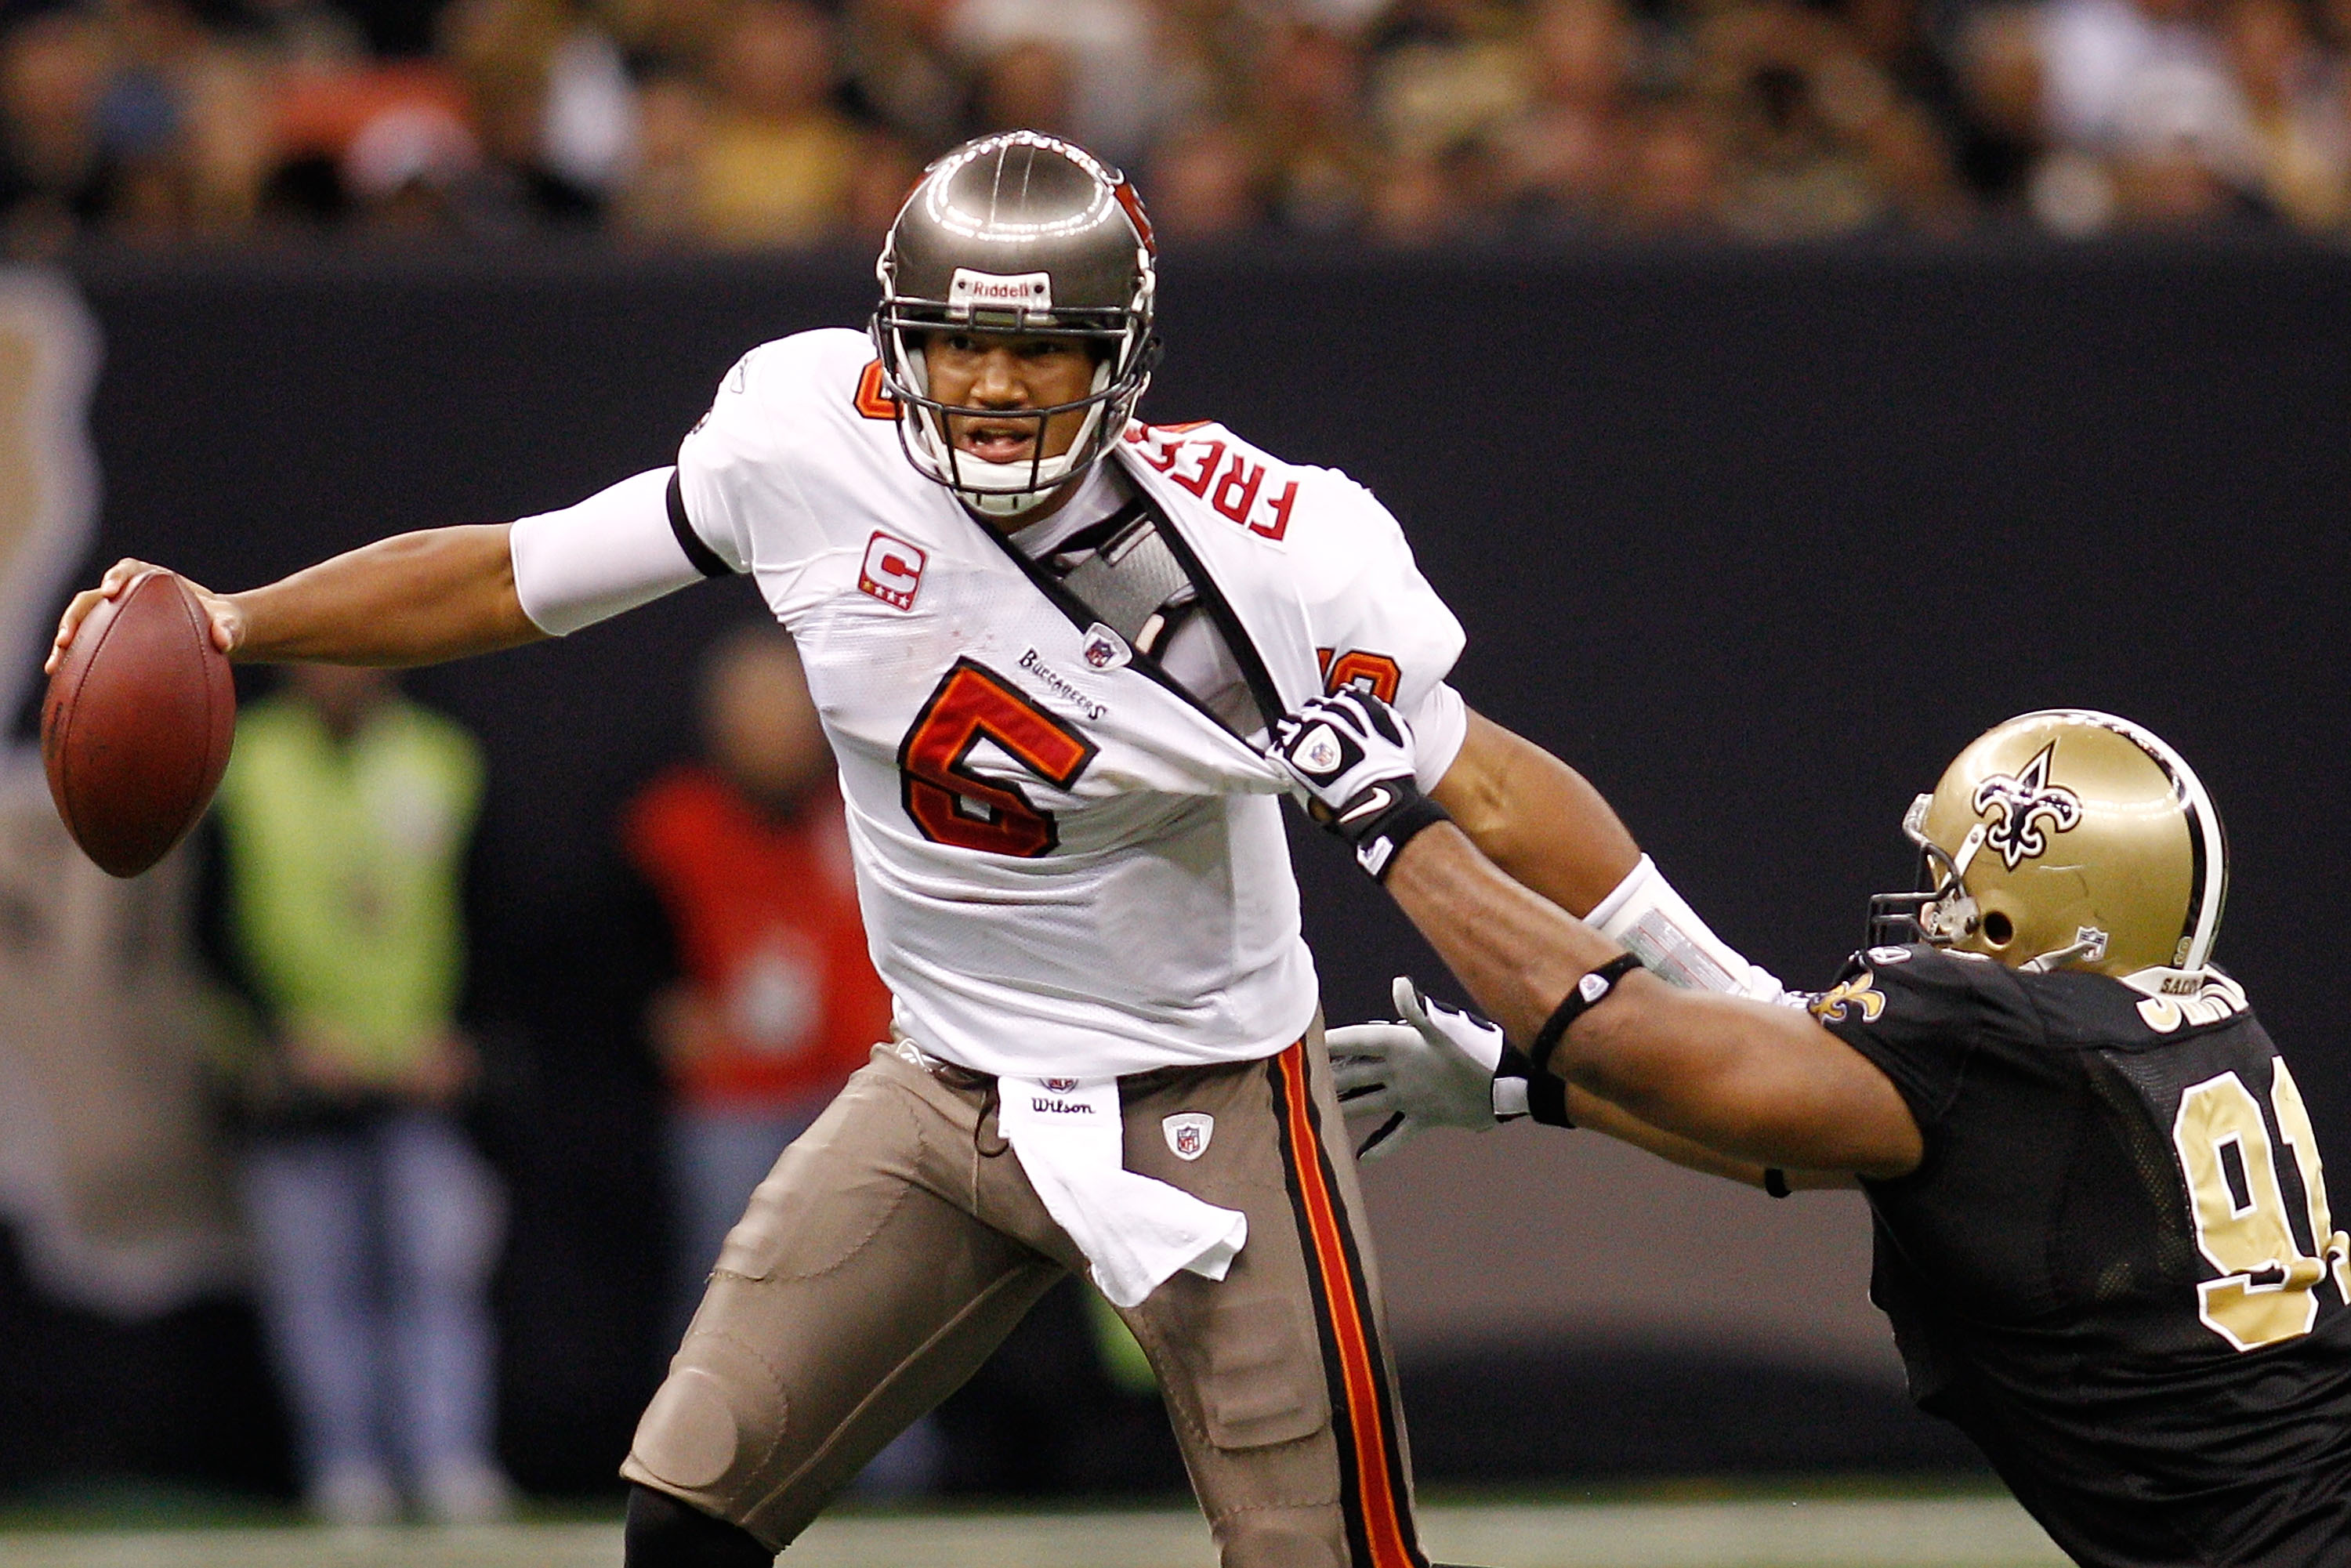 NEW ORLEANS, LA - JANUARY 02:  Quarterback Josh Freeman #5 of the Tampa Bay Buccaneers avoids a tackle by Will Smith #91 of the New Orleans Saints at the Louisiana Superdome on January 2, 2011 in New Orleans, Louisiana.   The Buccaneers defeated the Saint